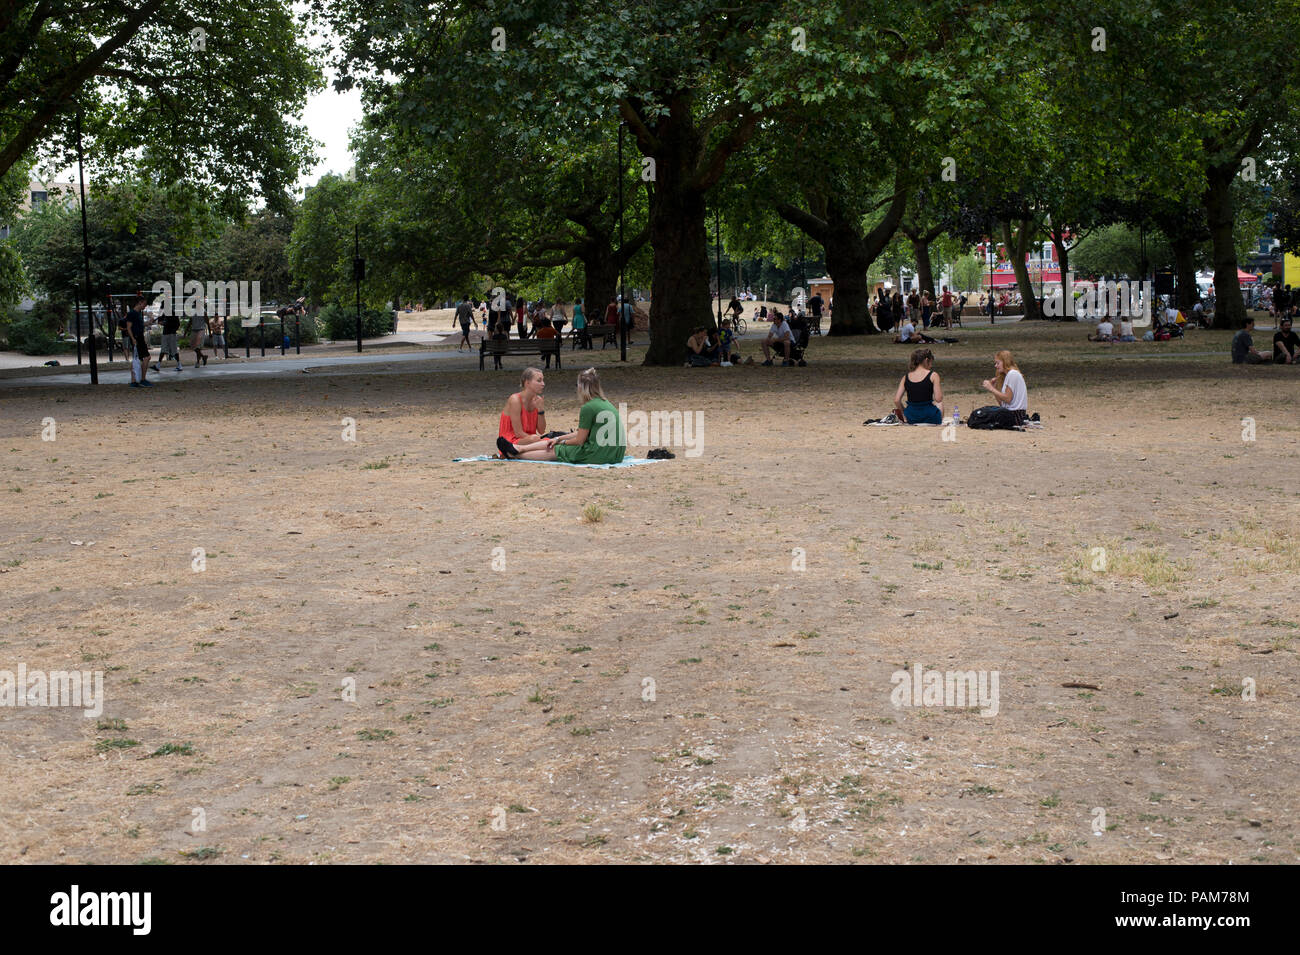 Hackney, London. London Fields. Parched earth. - Stock Image